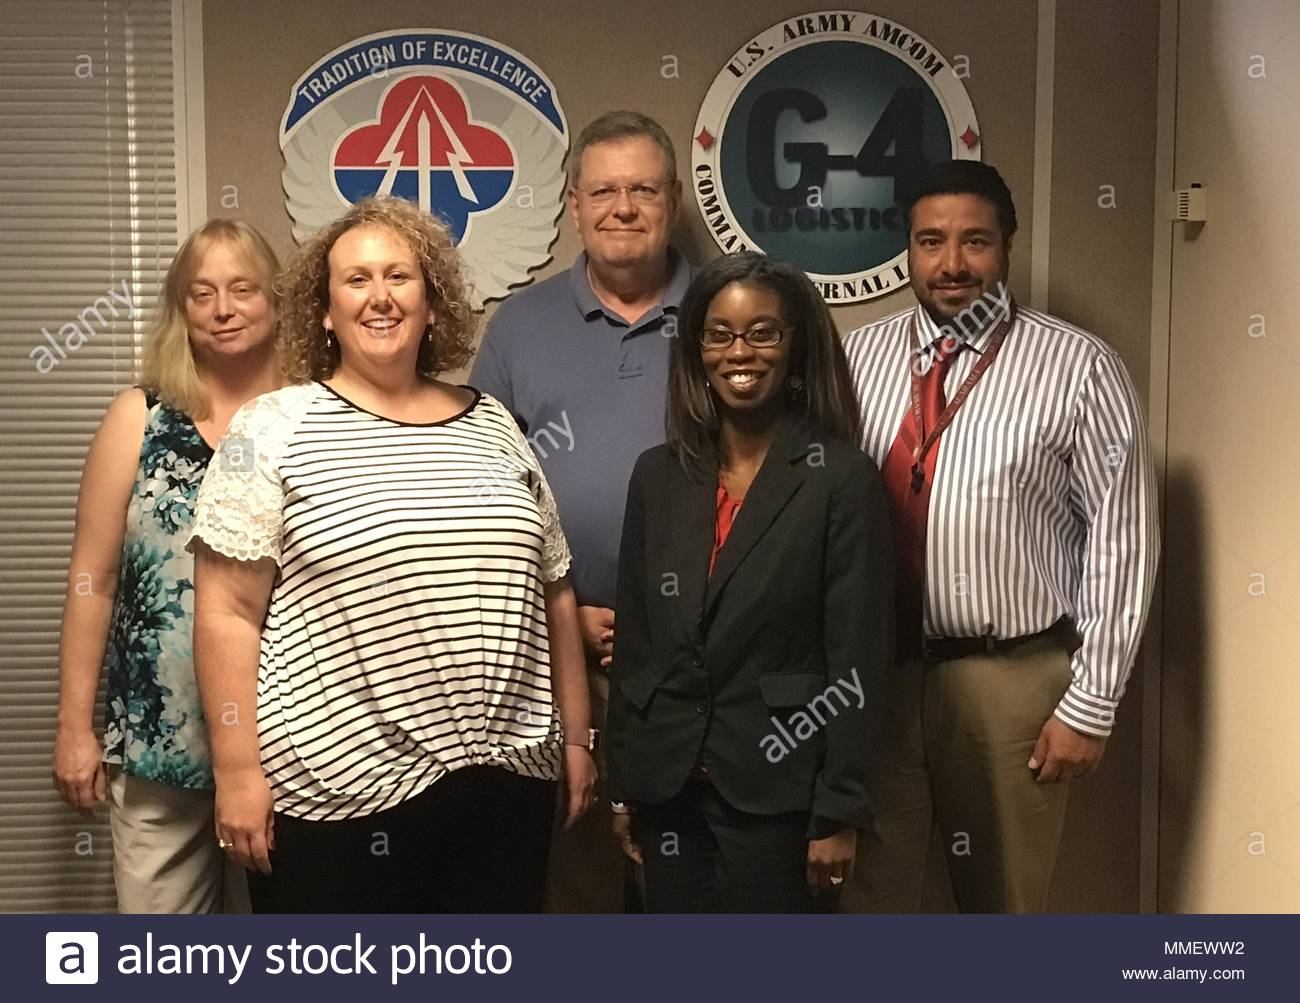 The Aviation and Missile Command's G-4 Environmental Hot Line Team is responsible for reviewing UH-72 Lakota consumables materials for compliance with new air regulations and for providing recommended substitutions when necessary. The team includes, from left, Leslie Hasenbein, Sheree York, team lead Mark Feathers, LaDonna McCann and Zubin Dutia. Not pictured is Paul Robinson. (Courtesy Photo) - Stock Image